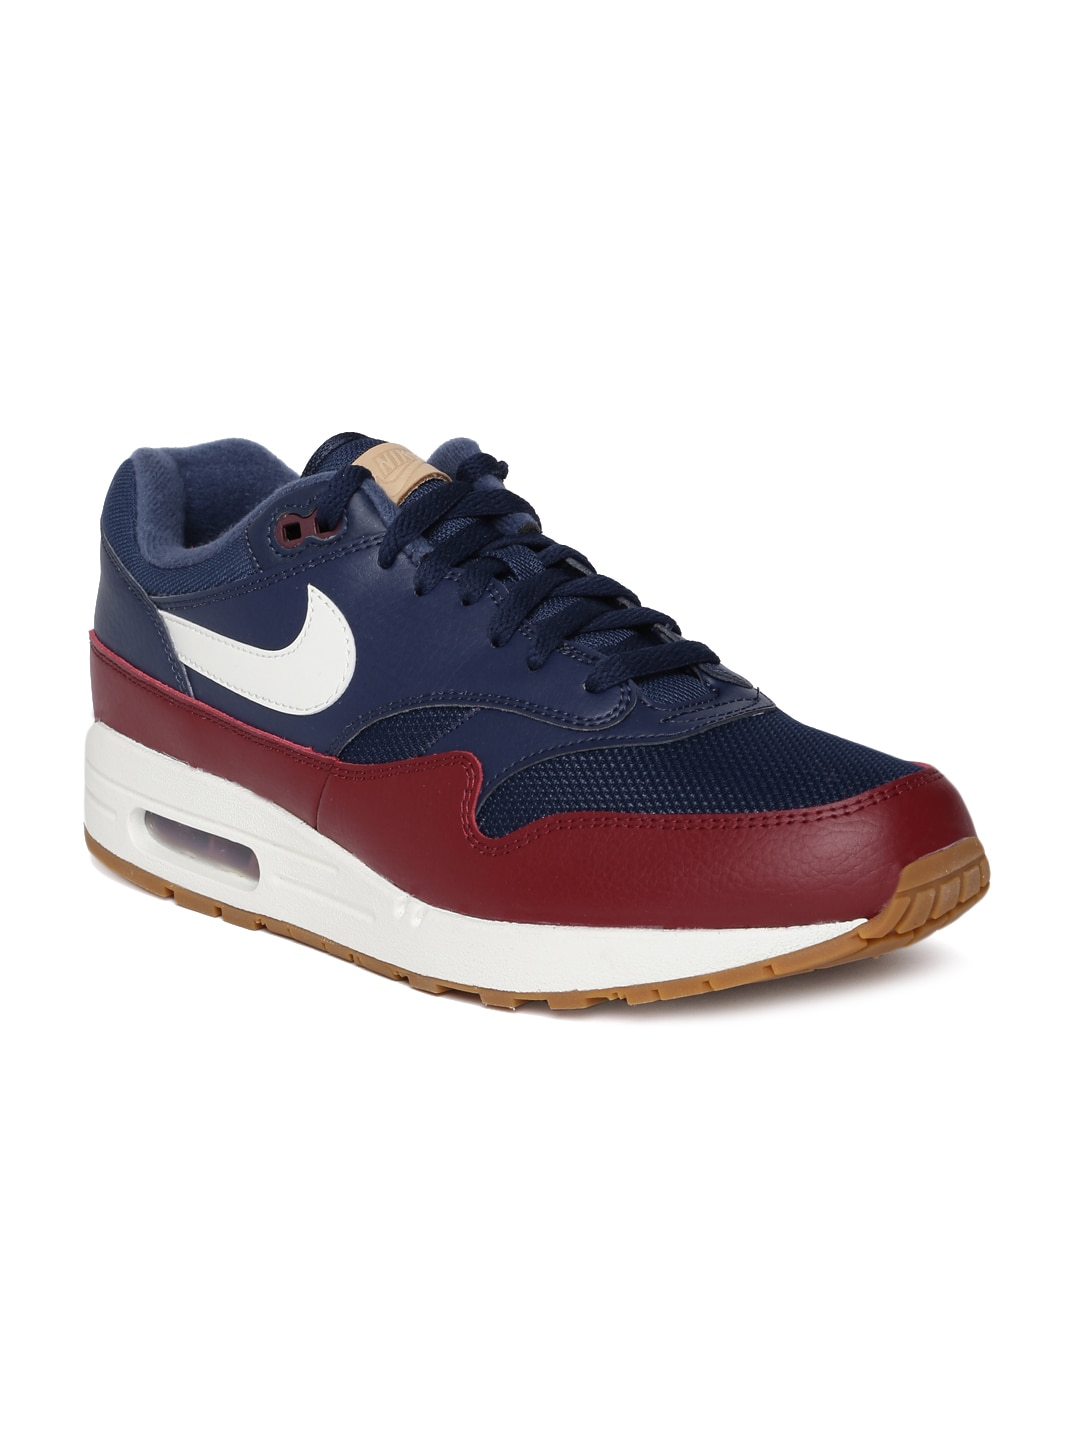 timeless design 1bfd0 122f4 Nike Shoes - Buy Nike Shoes for Men, Women   Kids Online   Myntra